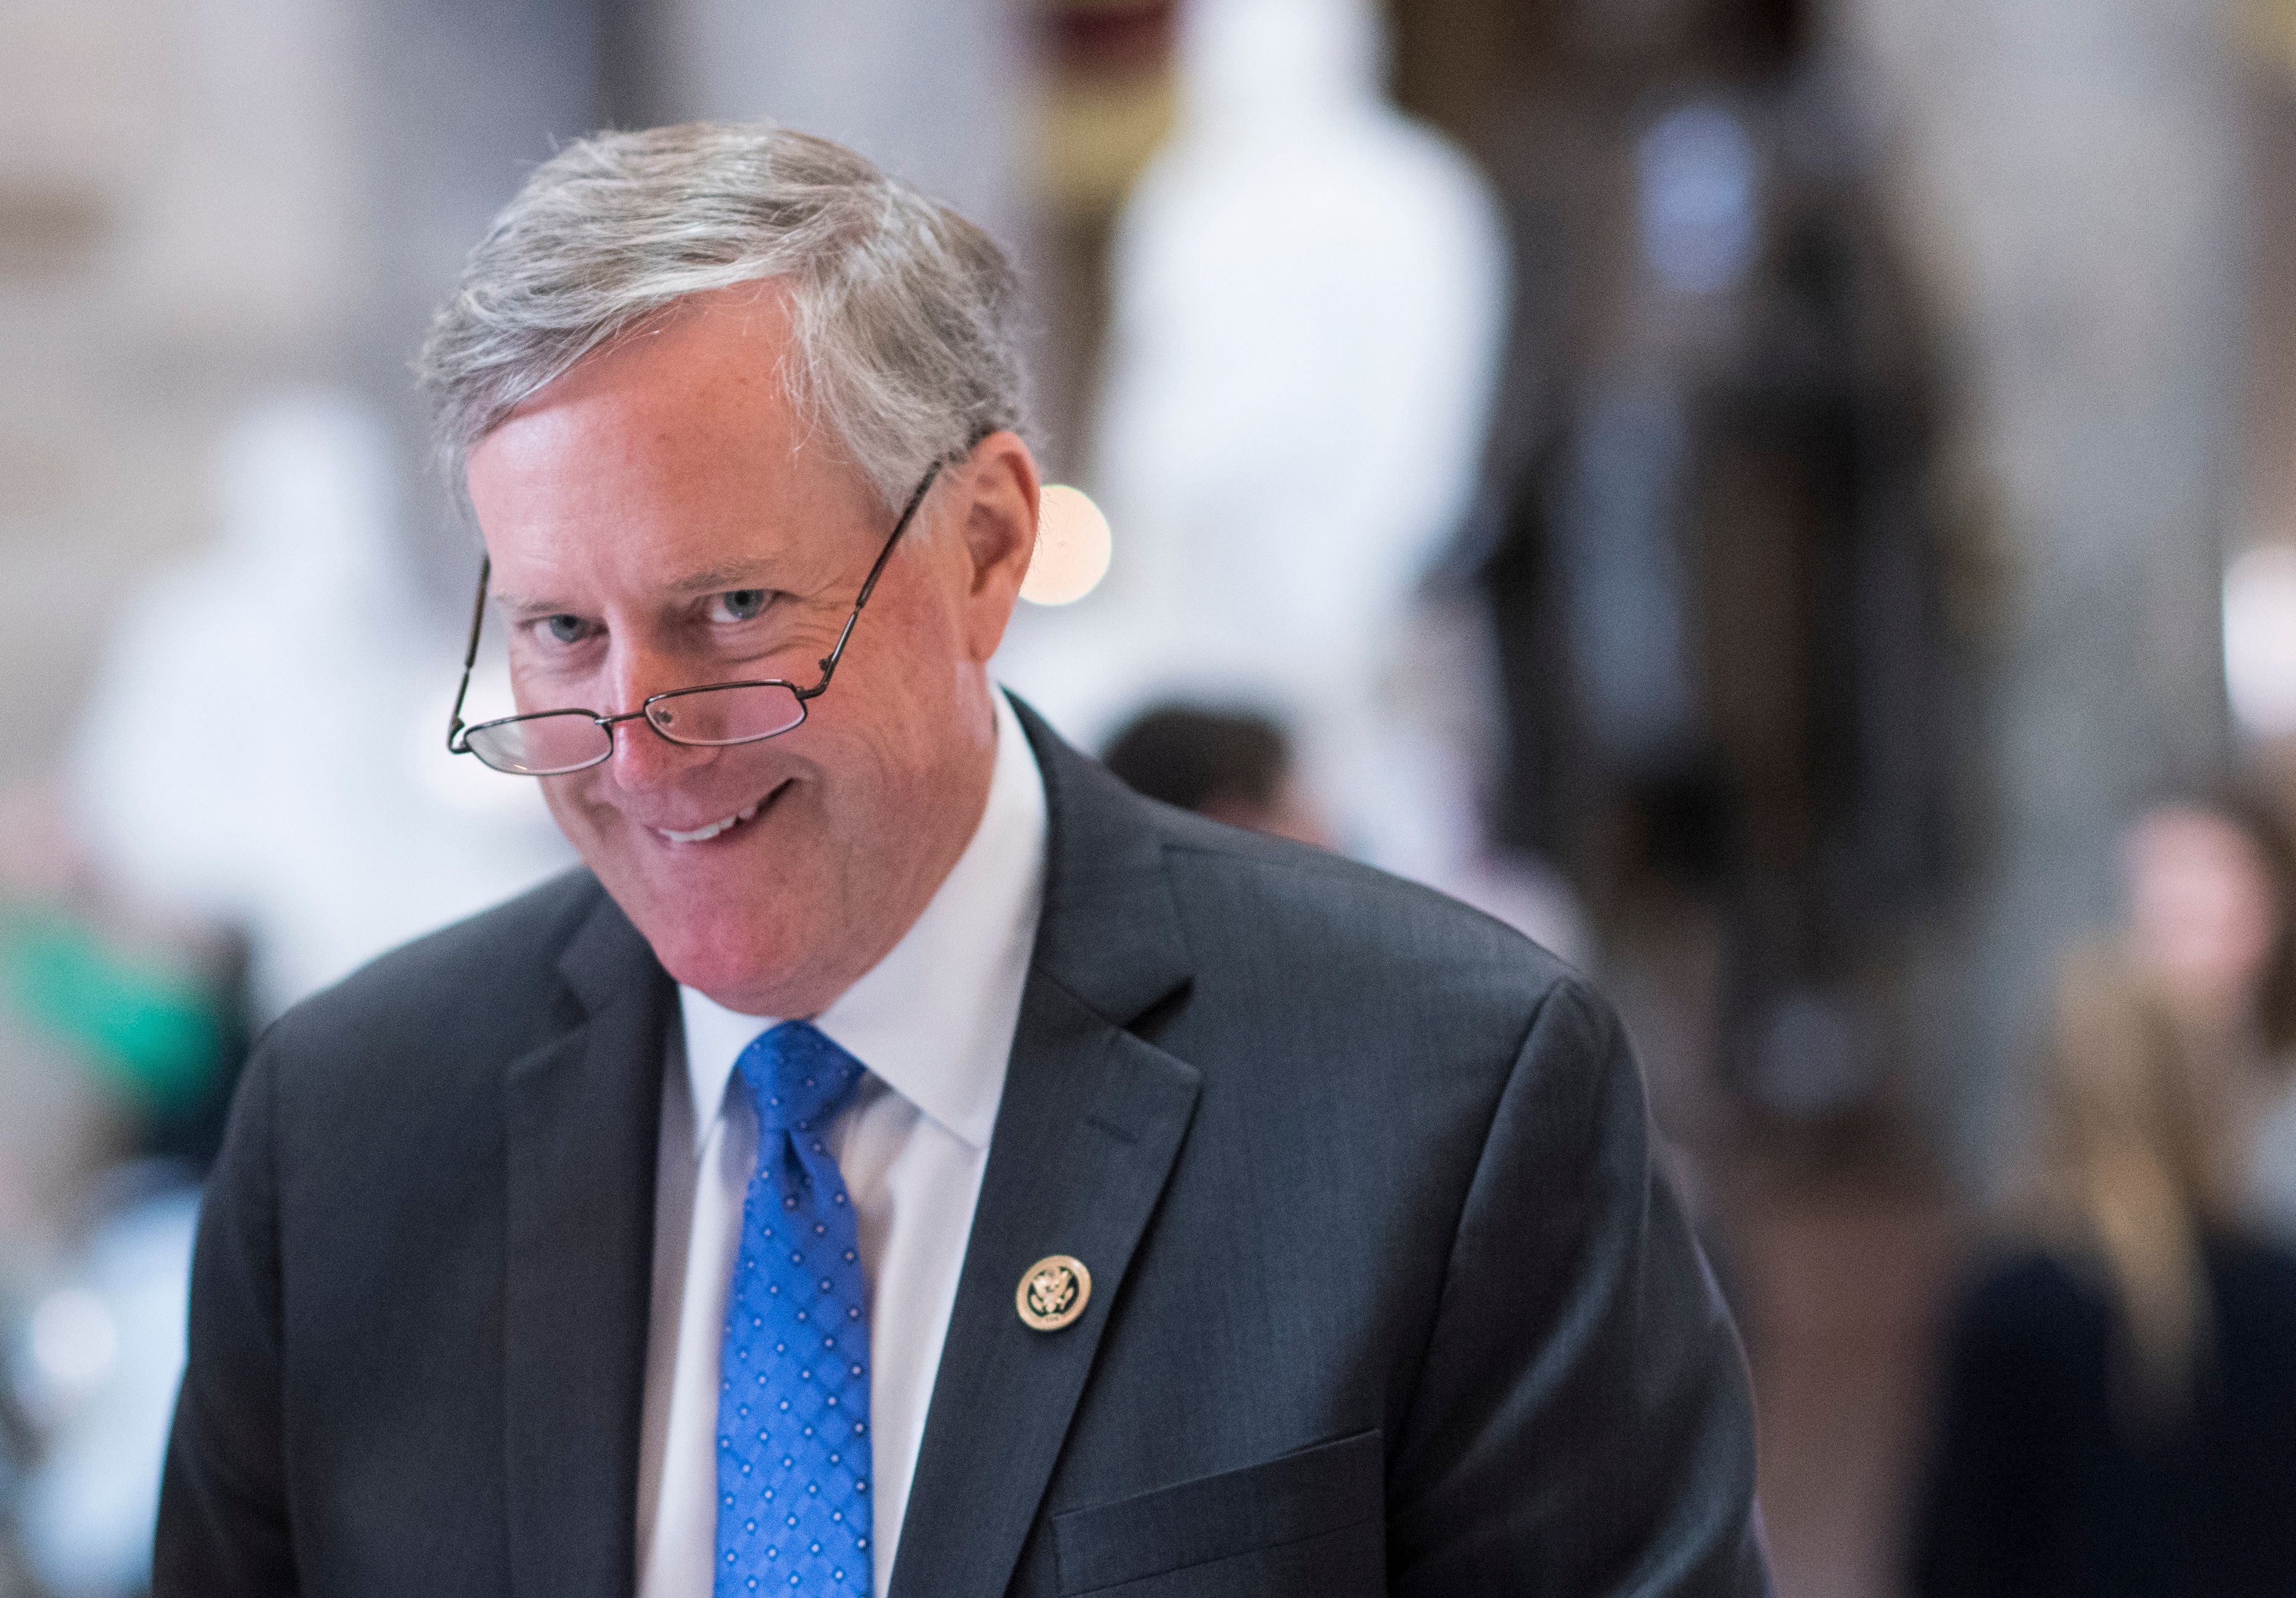 UNITED STATES - MARCH 22: Rep. Mark Meadows, R-N.C., chairman of the House Freedom Caucus, walks through Statuary Hall in the Capitol on Wednesday, March 22, 2017. (Photo By Bill Clark/CQ Roll Call)